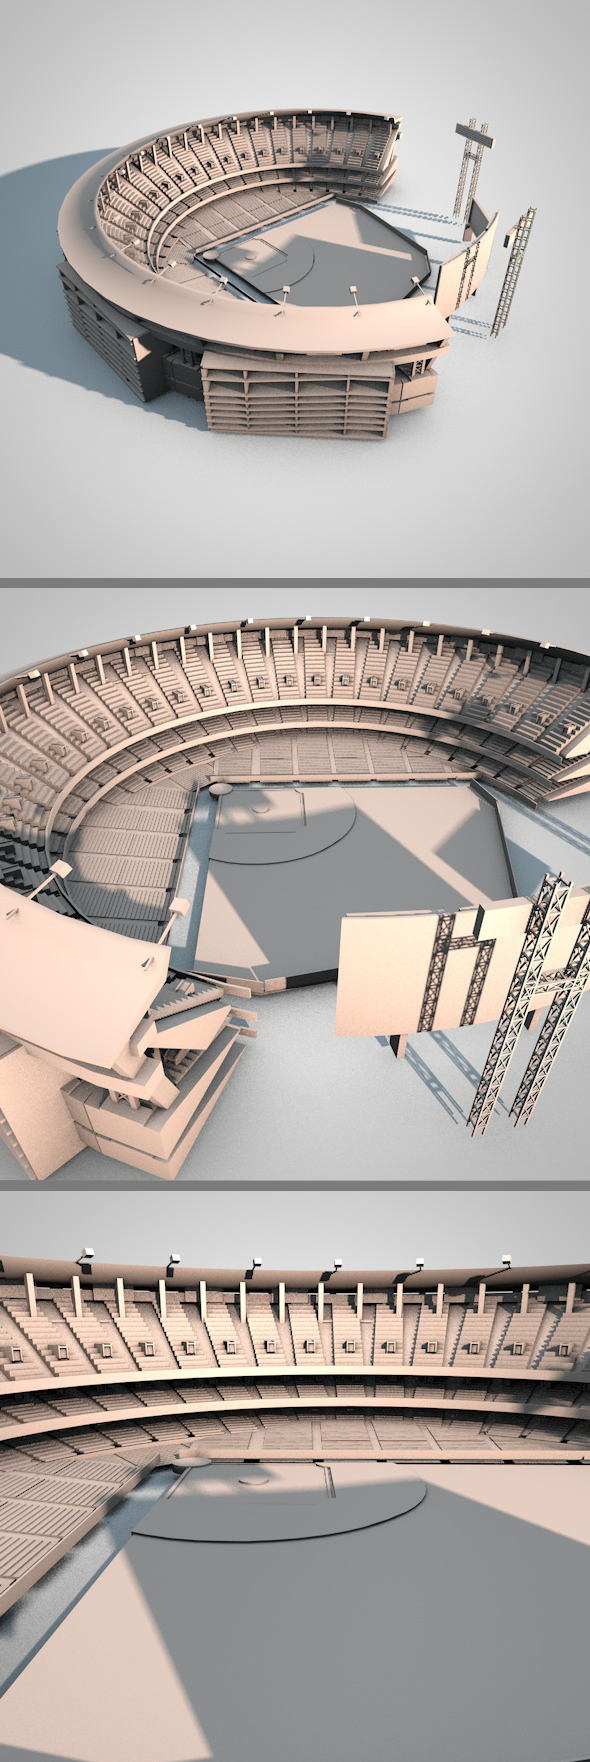 Baseball Stadium - 3DOcean Item for Sale